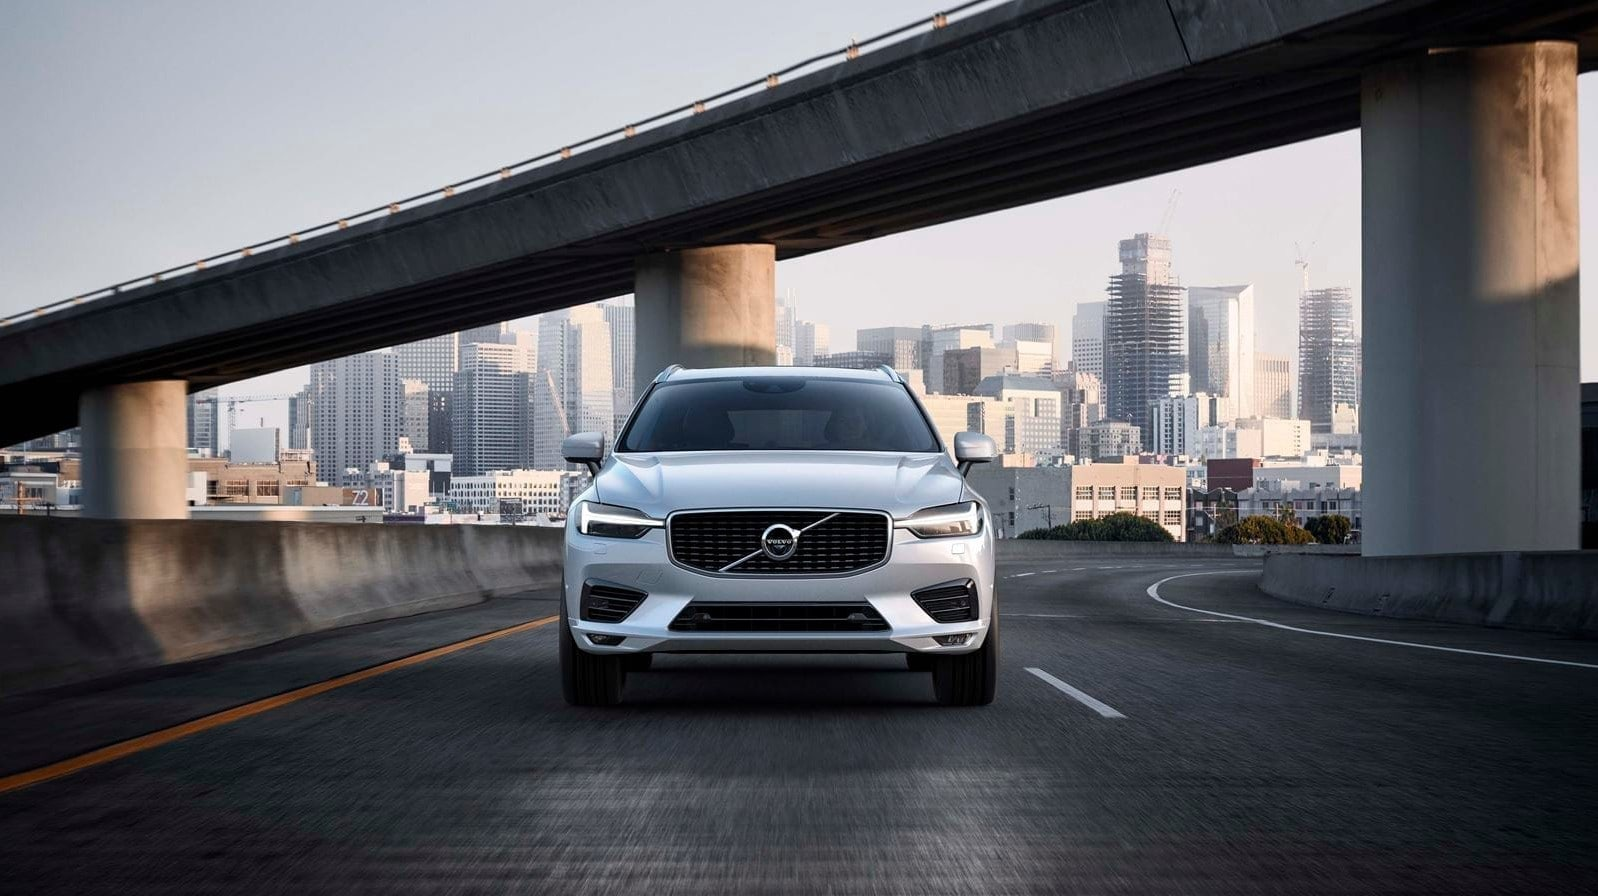 Culver City Volvo Cars offers extended warranty plans to help you save money near Los Angeles